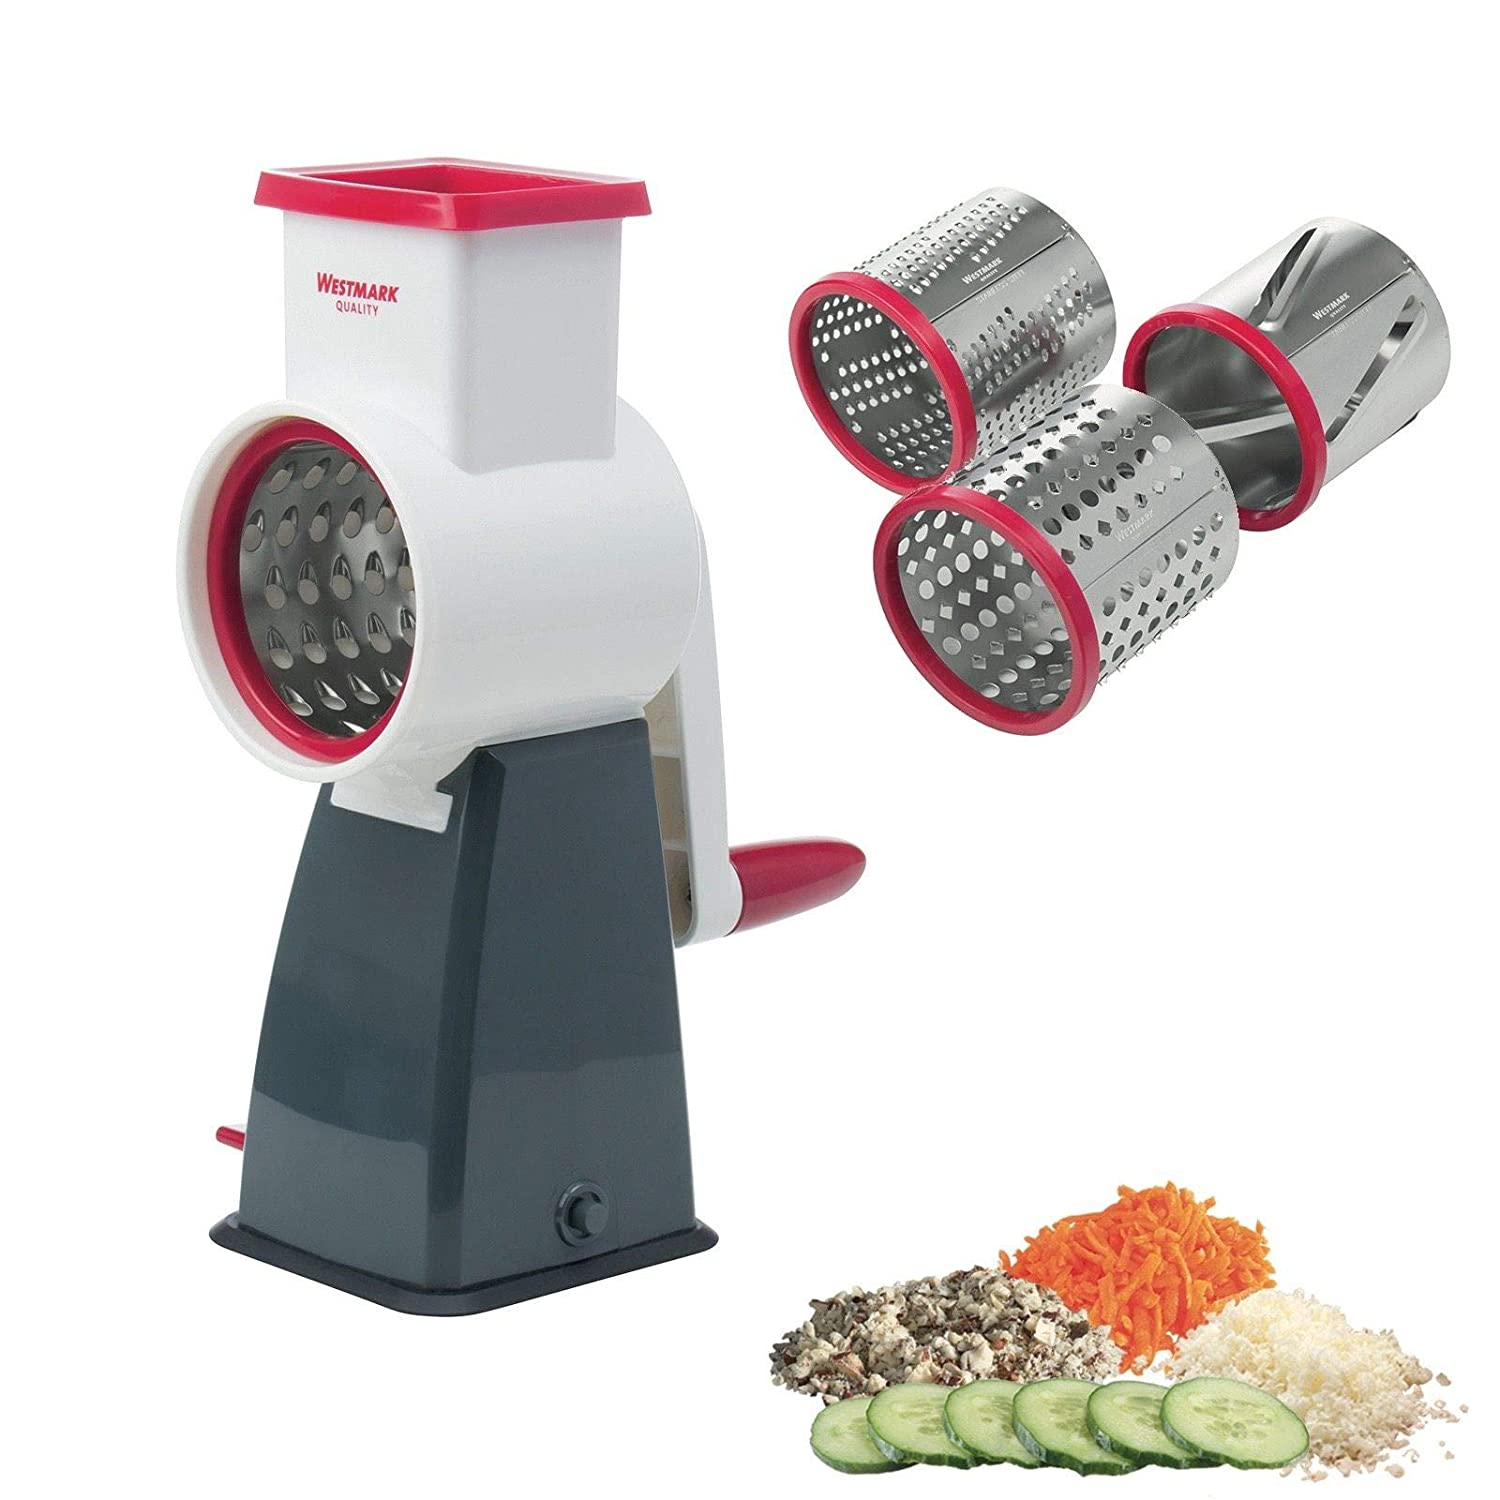 Westmark Cheese Grater Comes With 4 Interchanging Stainless Steel Drums Rotary Food Grater And Slicer For Cheese Nuts And Fruits